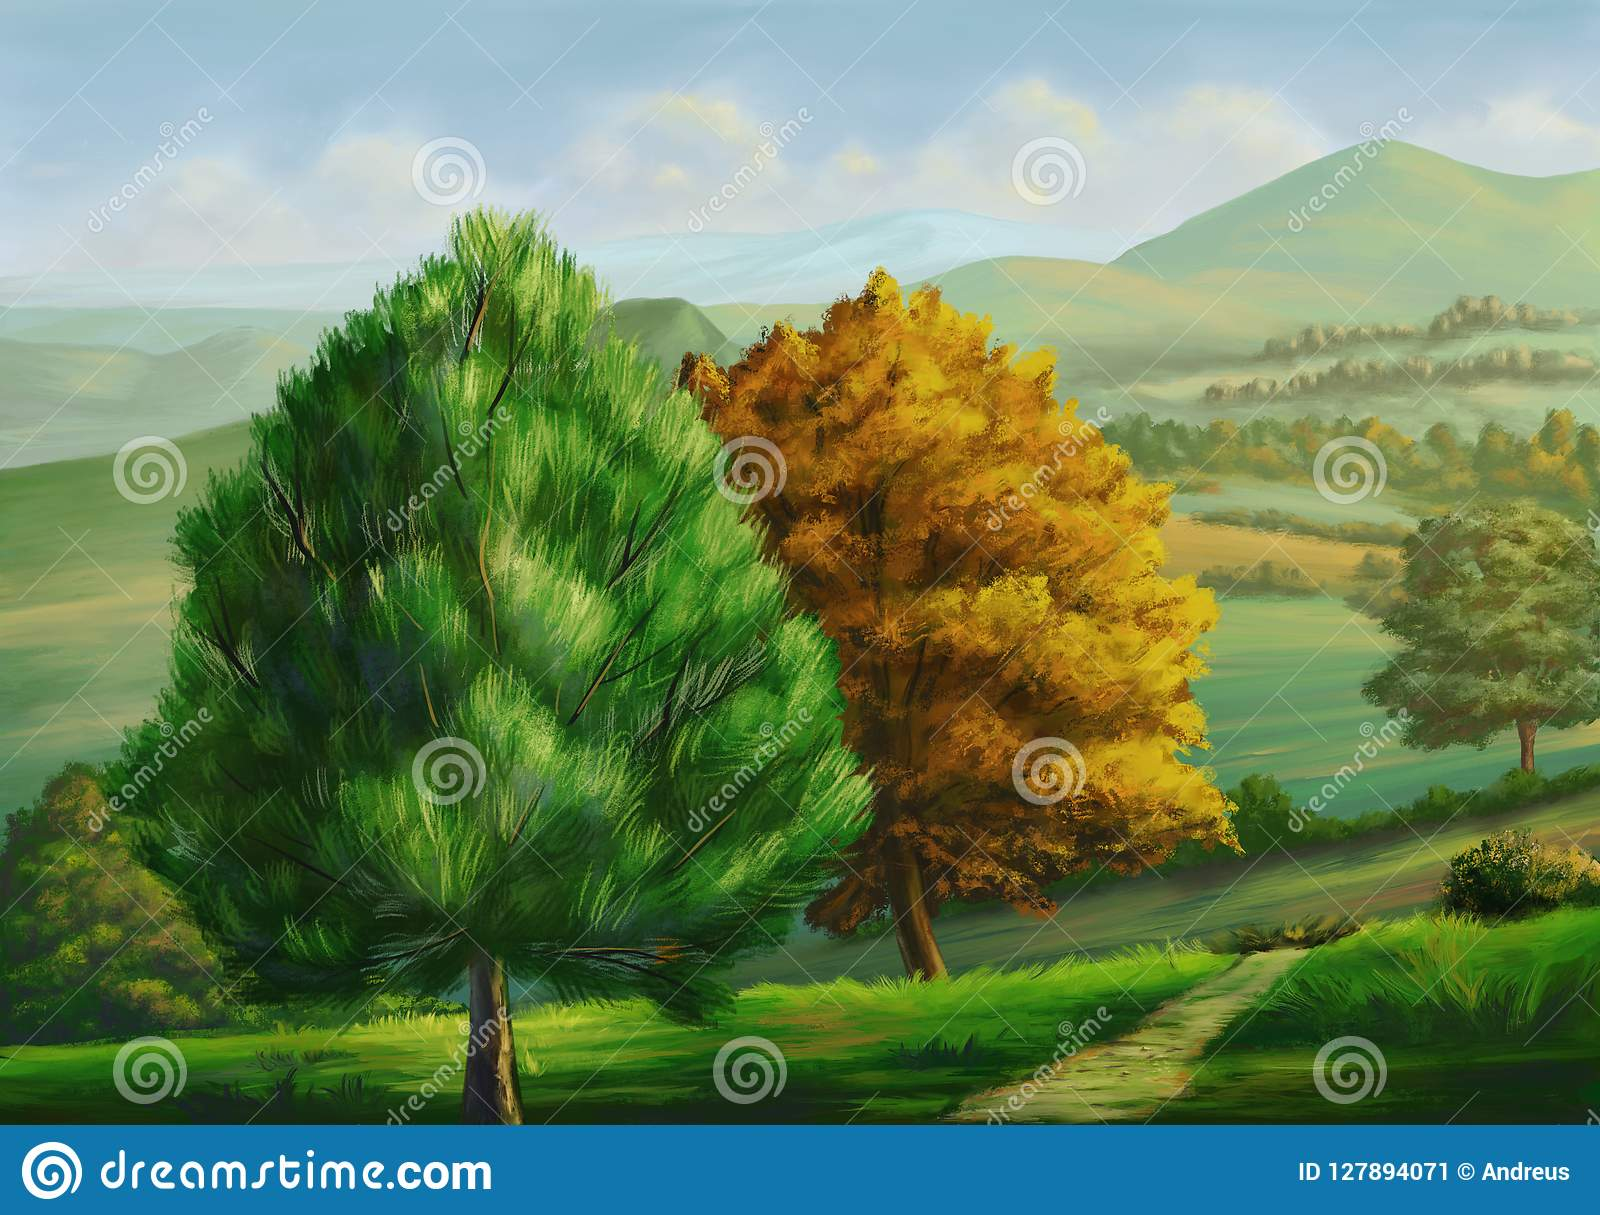 Country landscape with trees